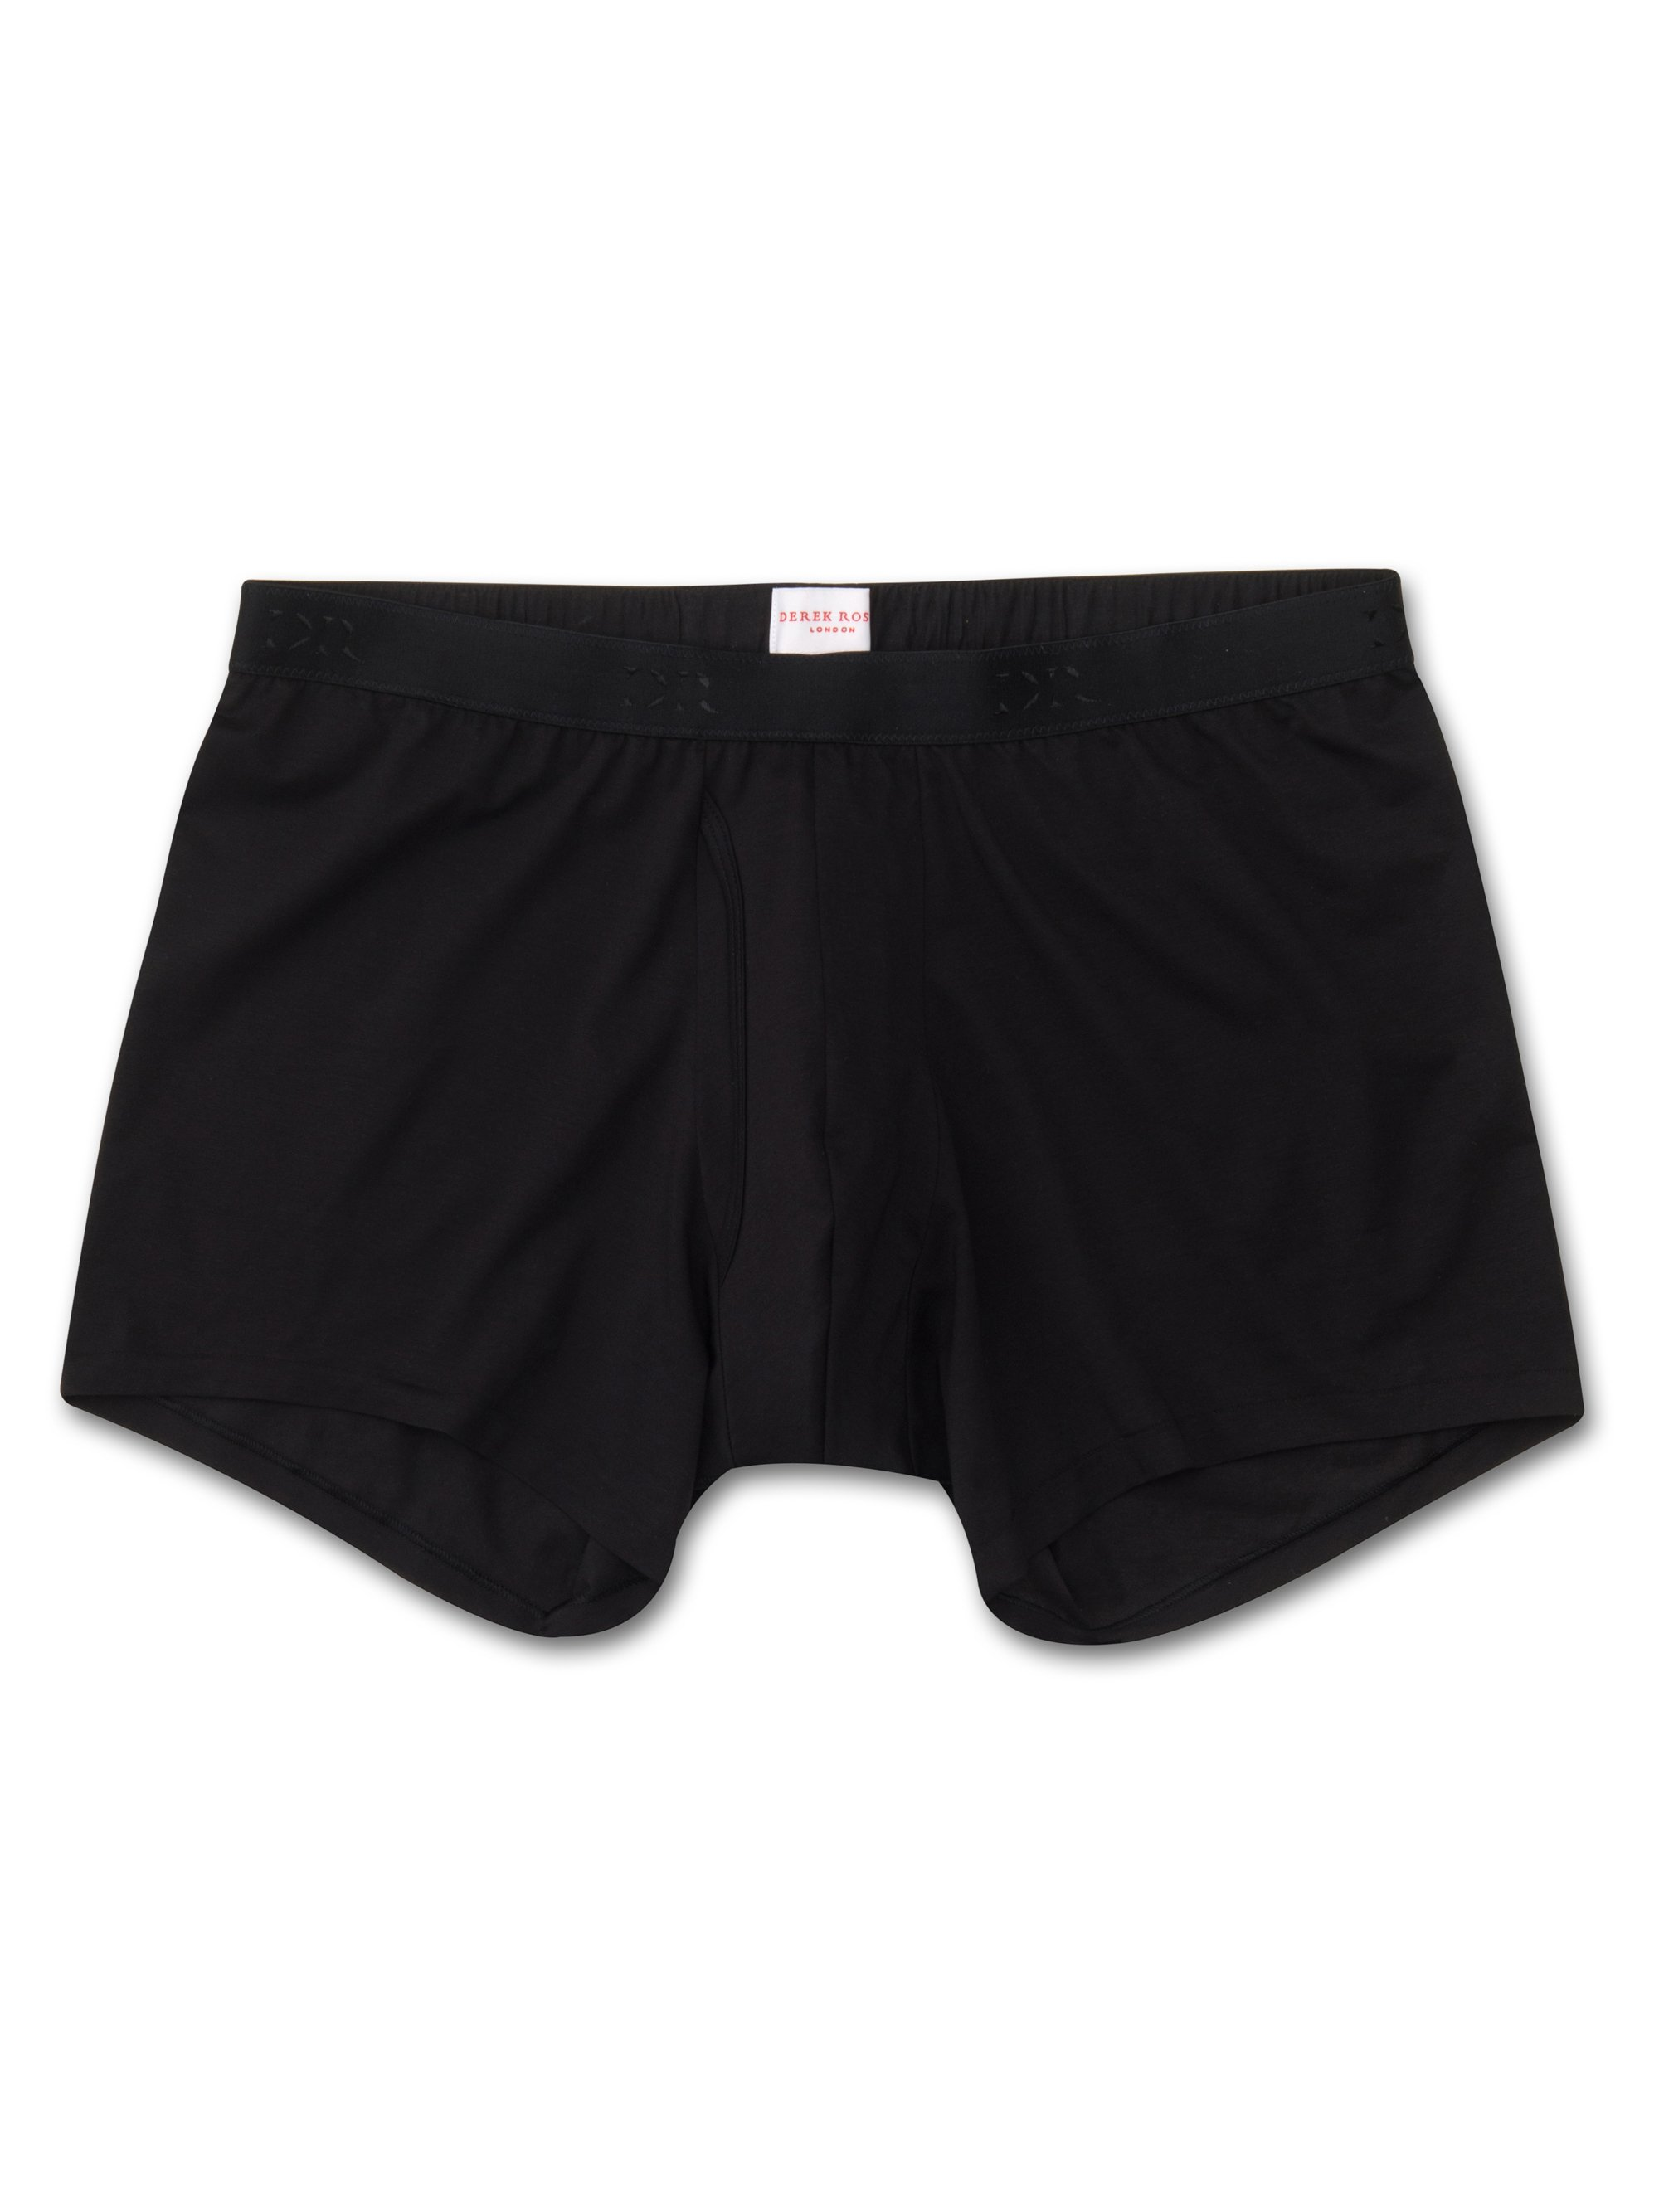 Men's Trunks Jack Pima Cotton Stretch Black